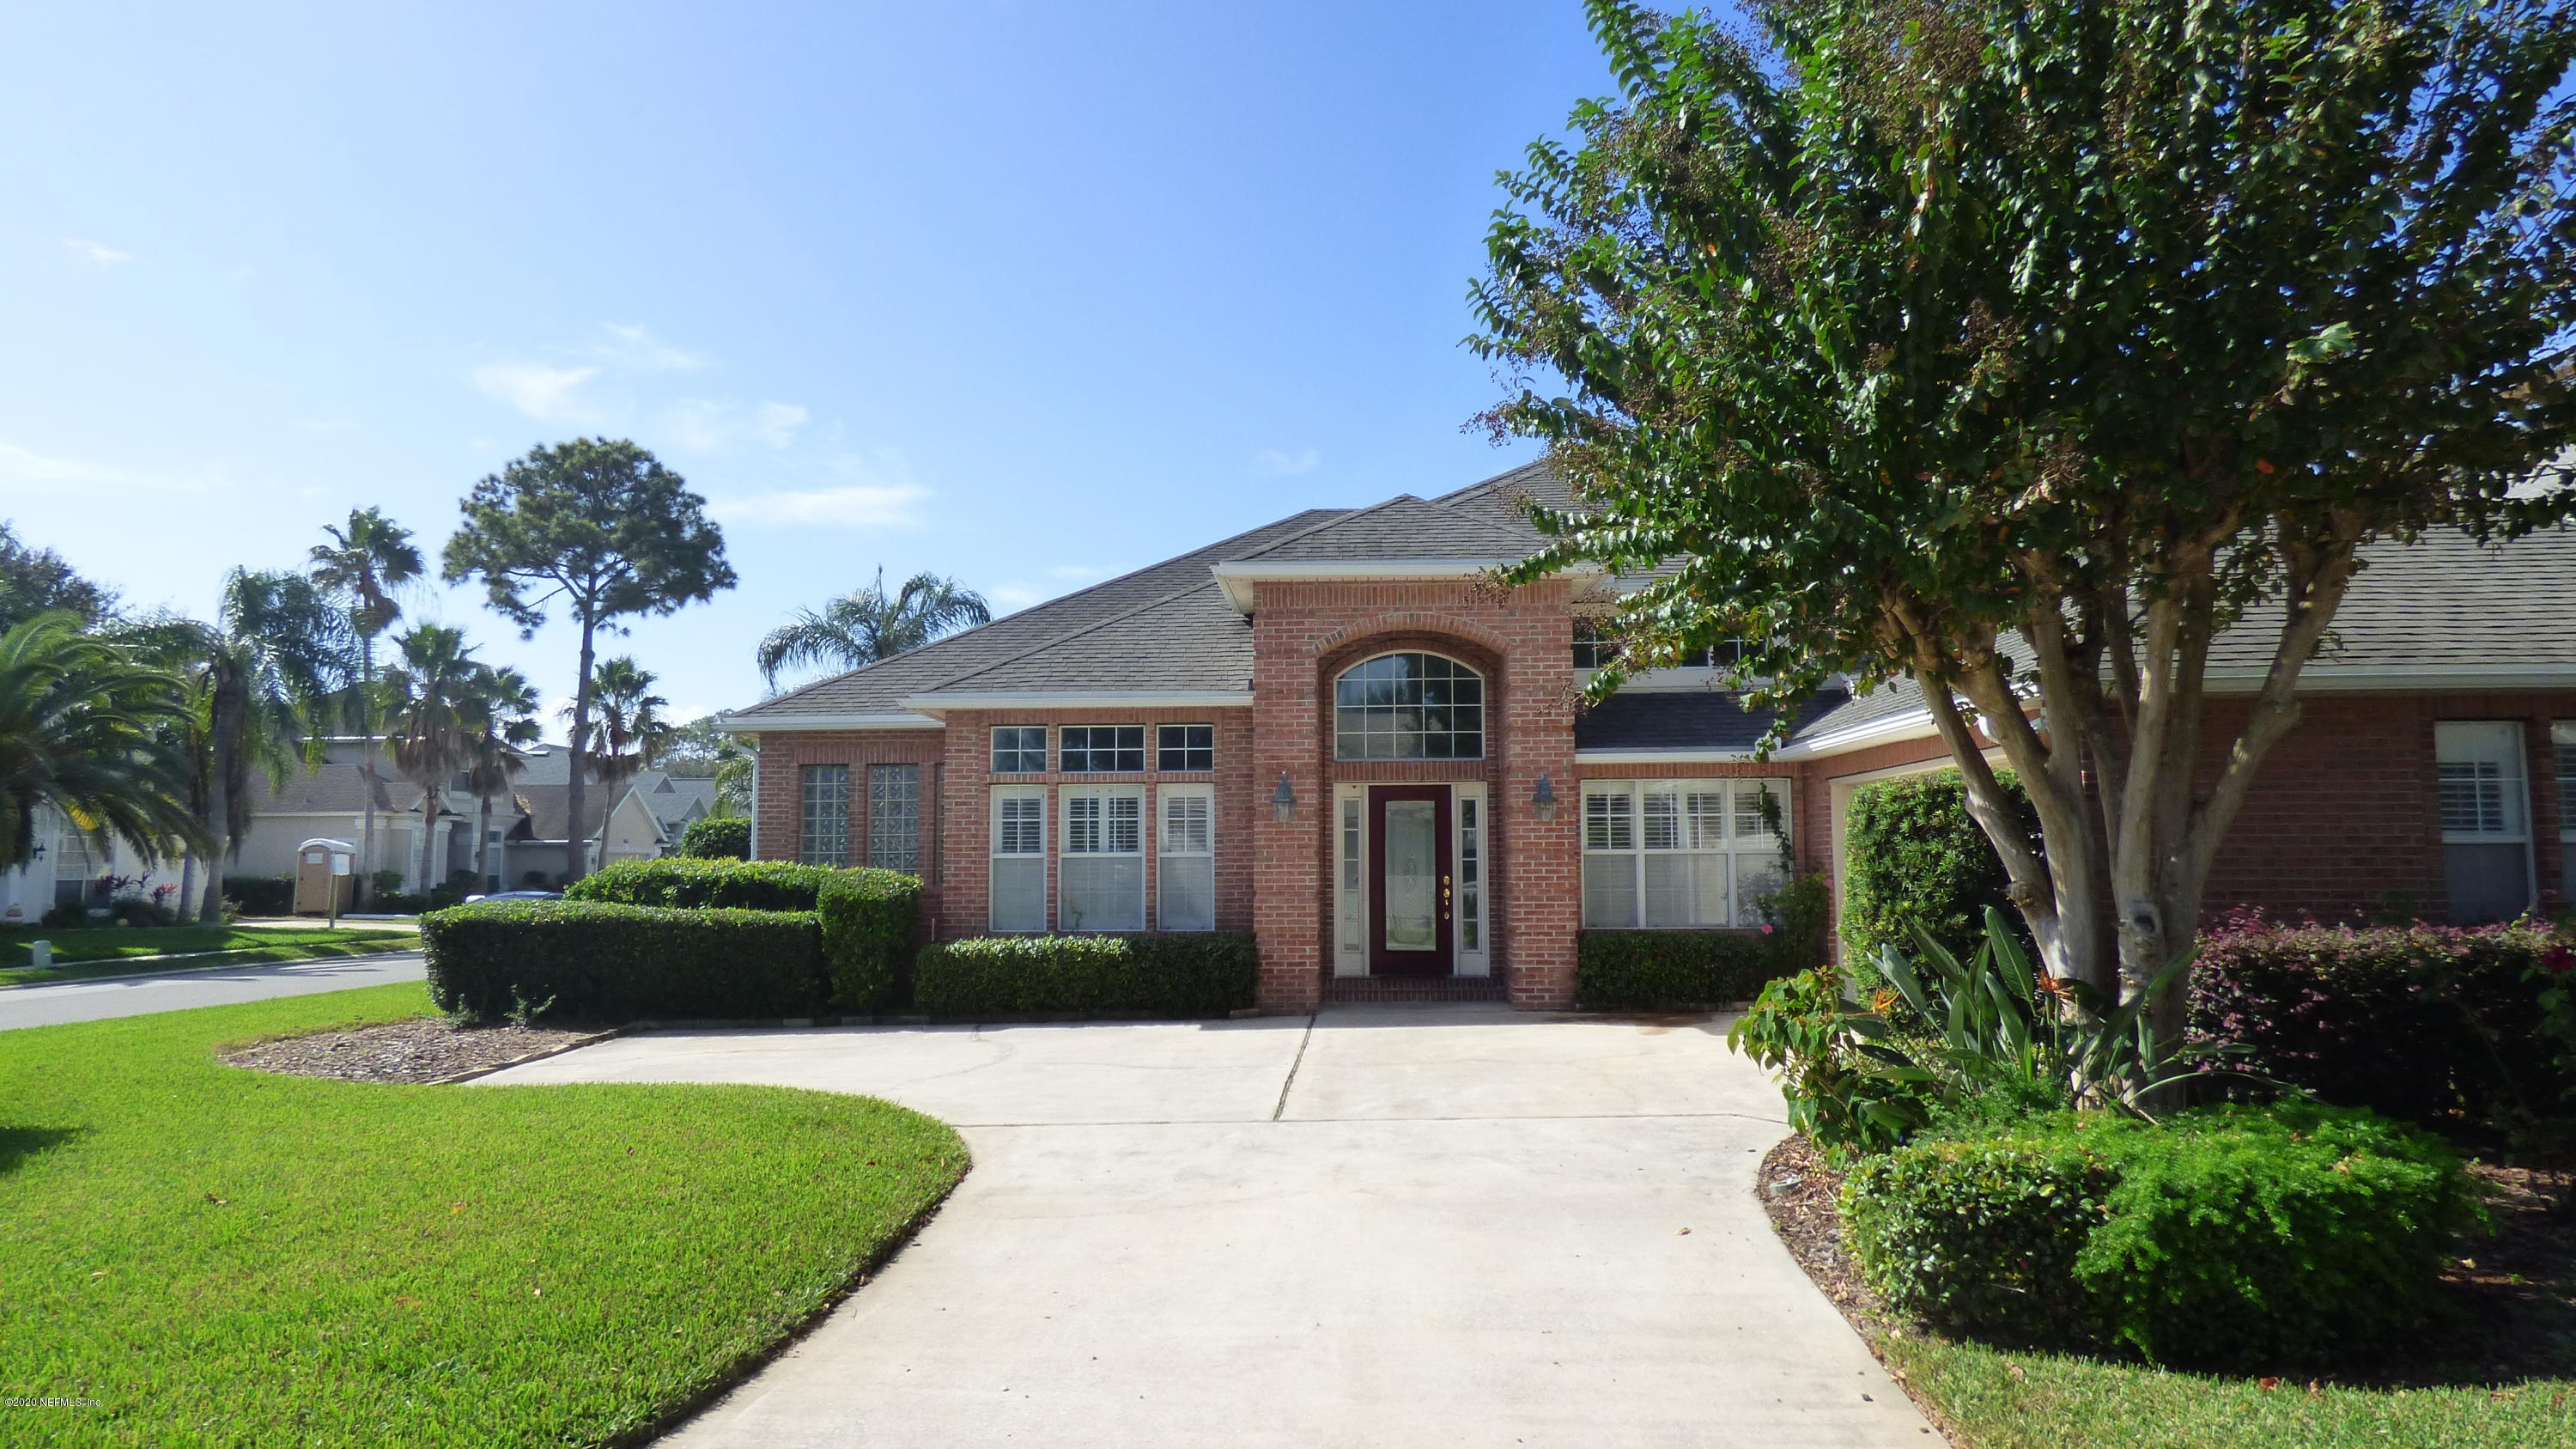 429 SEA SPRAY, PONTE VEDRA BEACH, FLORIDA 32082, 4 Bedrooms Bedrooms, ,2 BathroomsBathrooms,Rental,For Rent,SEA SPRAY,1081968